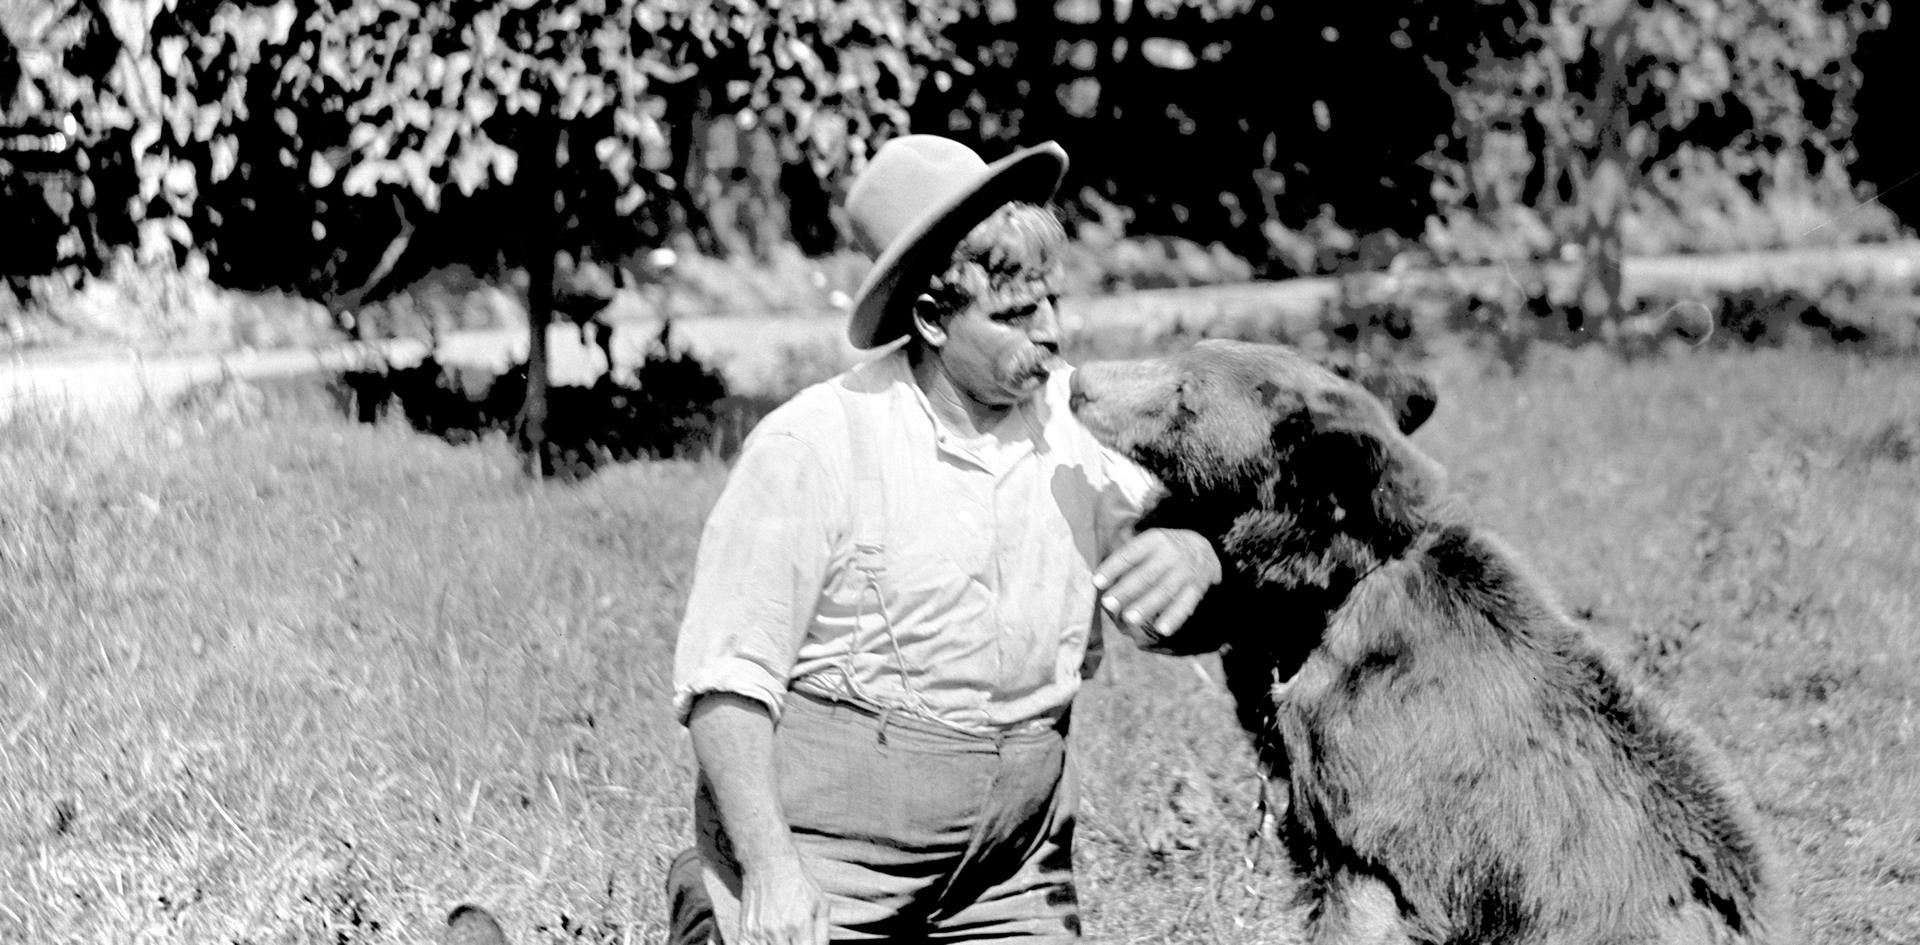 John Zapp wioth two of the Bears from his Zoo at Zapp's Park.  Photo by Pop Laval.